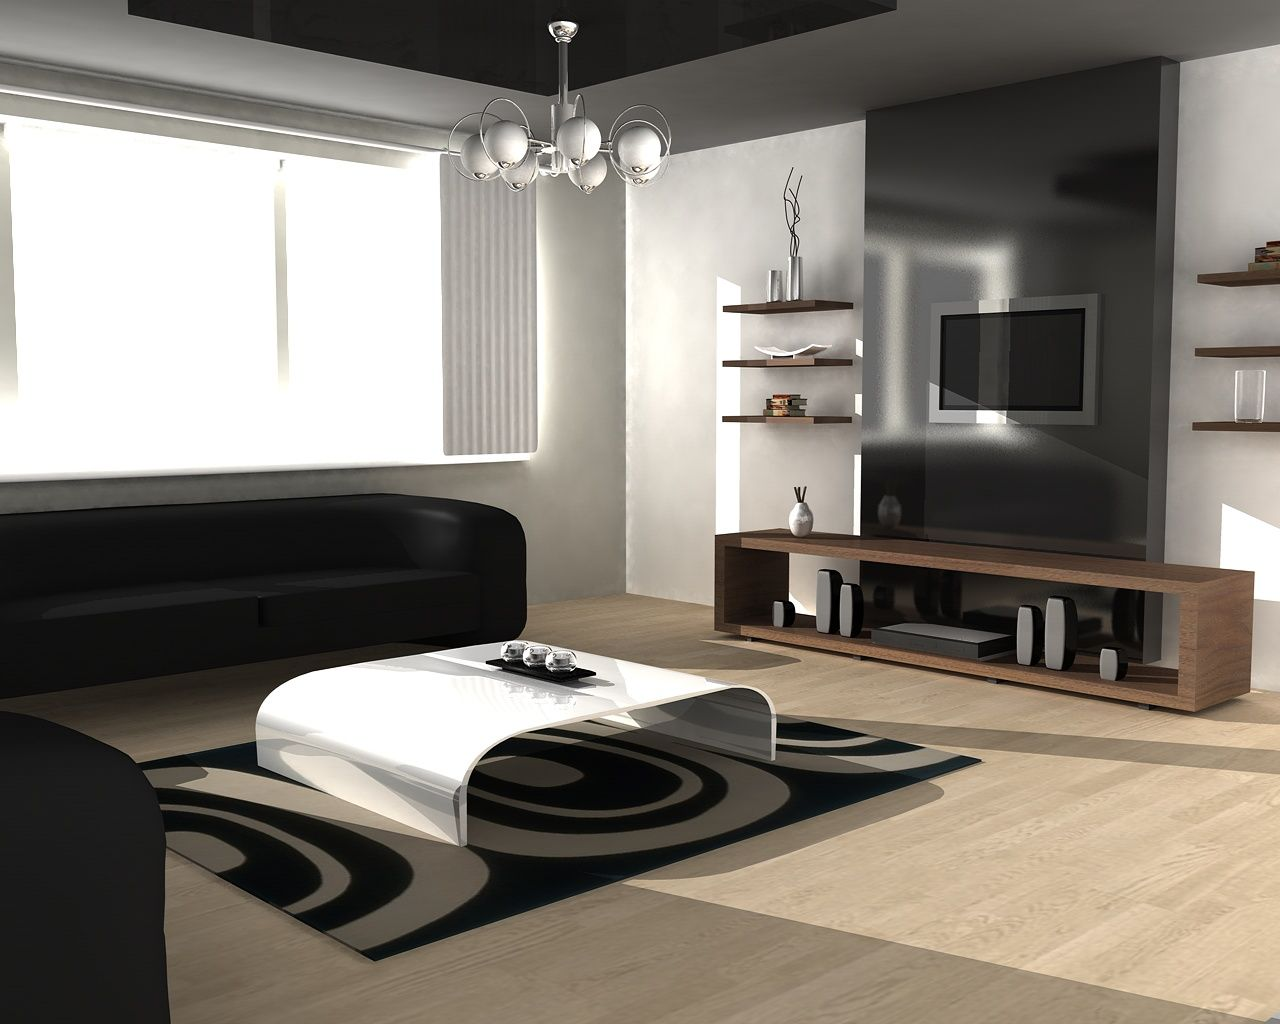 White stripes futuristic living room interior design integrated led - Futuristic Living Room Furniture 3d Design Concept Featuring Black Modern Sofas And High Gloss White Curved